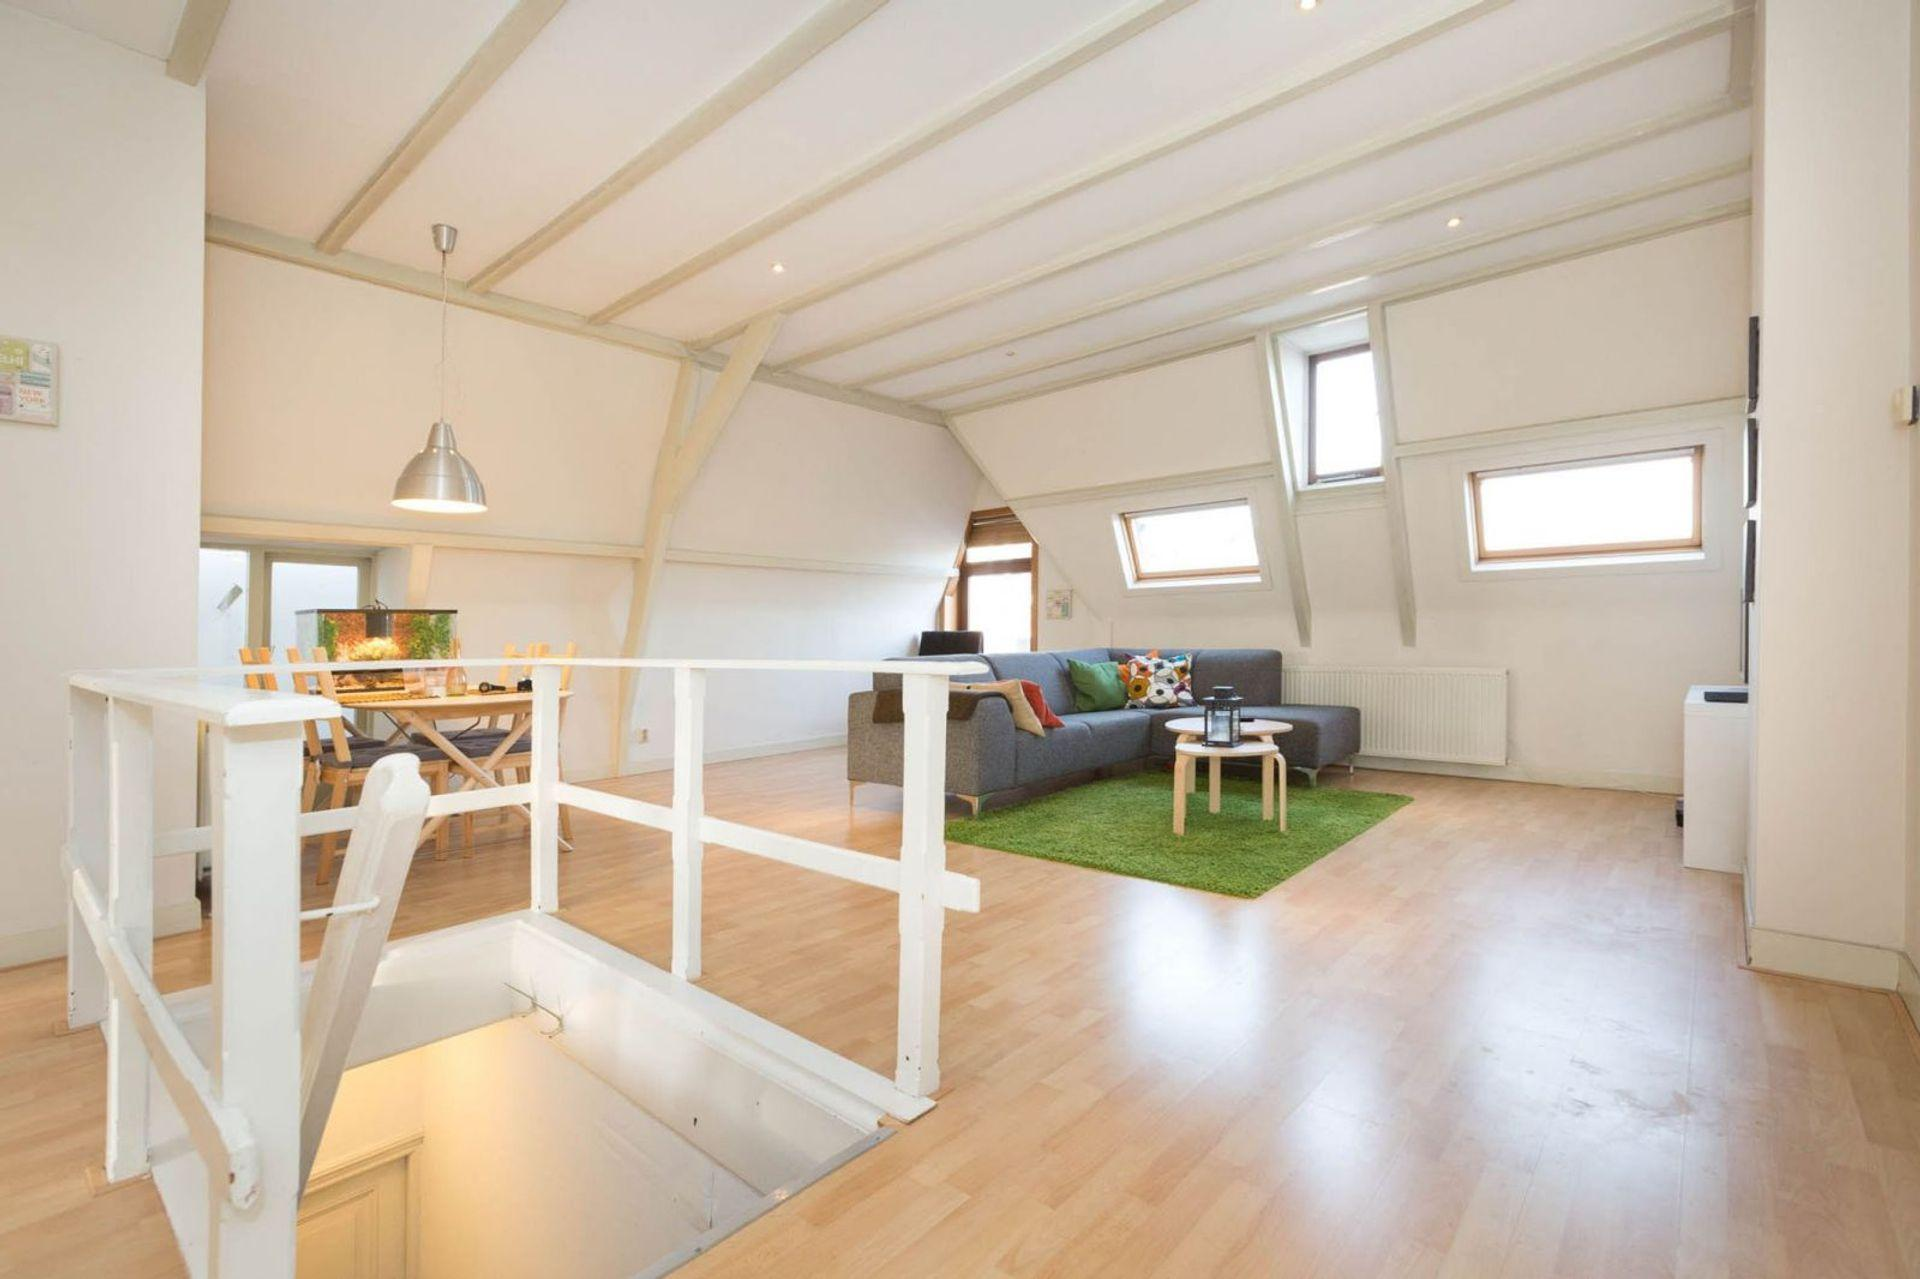 Bekijk de foto van: 2e Schuytstraat 106 , 2517 XJ in Den haag - The Hague Real Estate Services